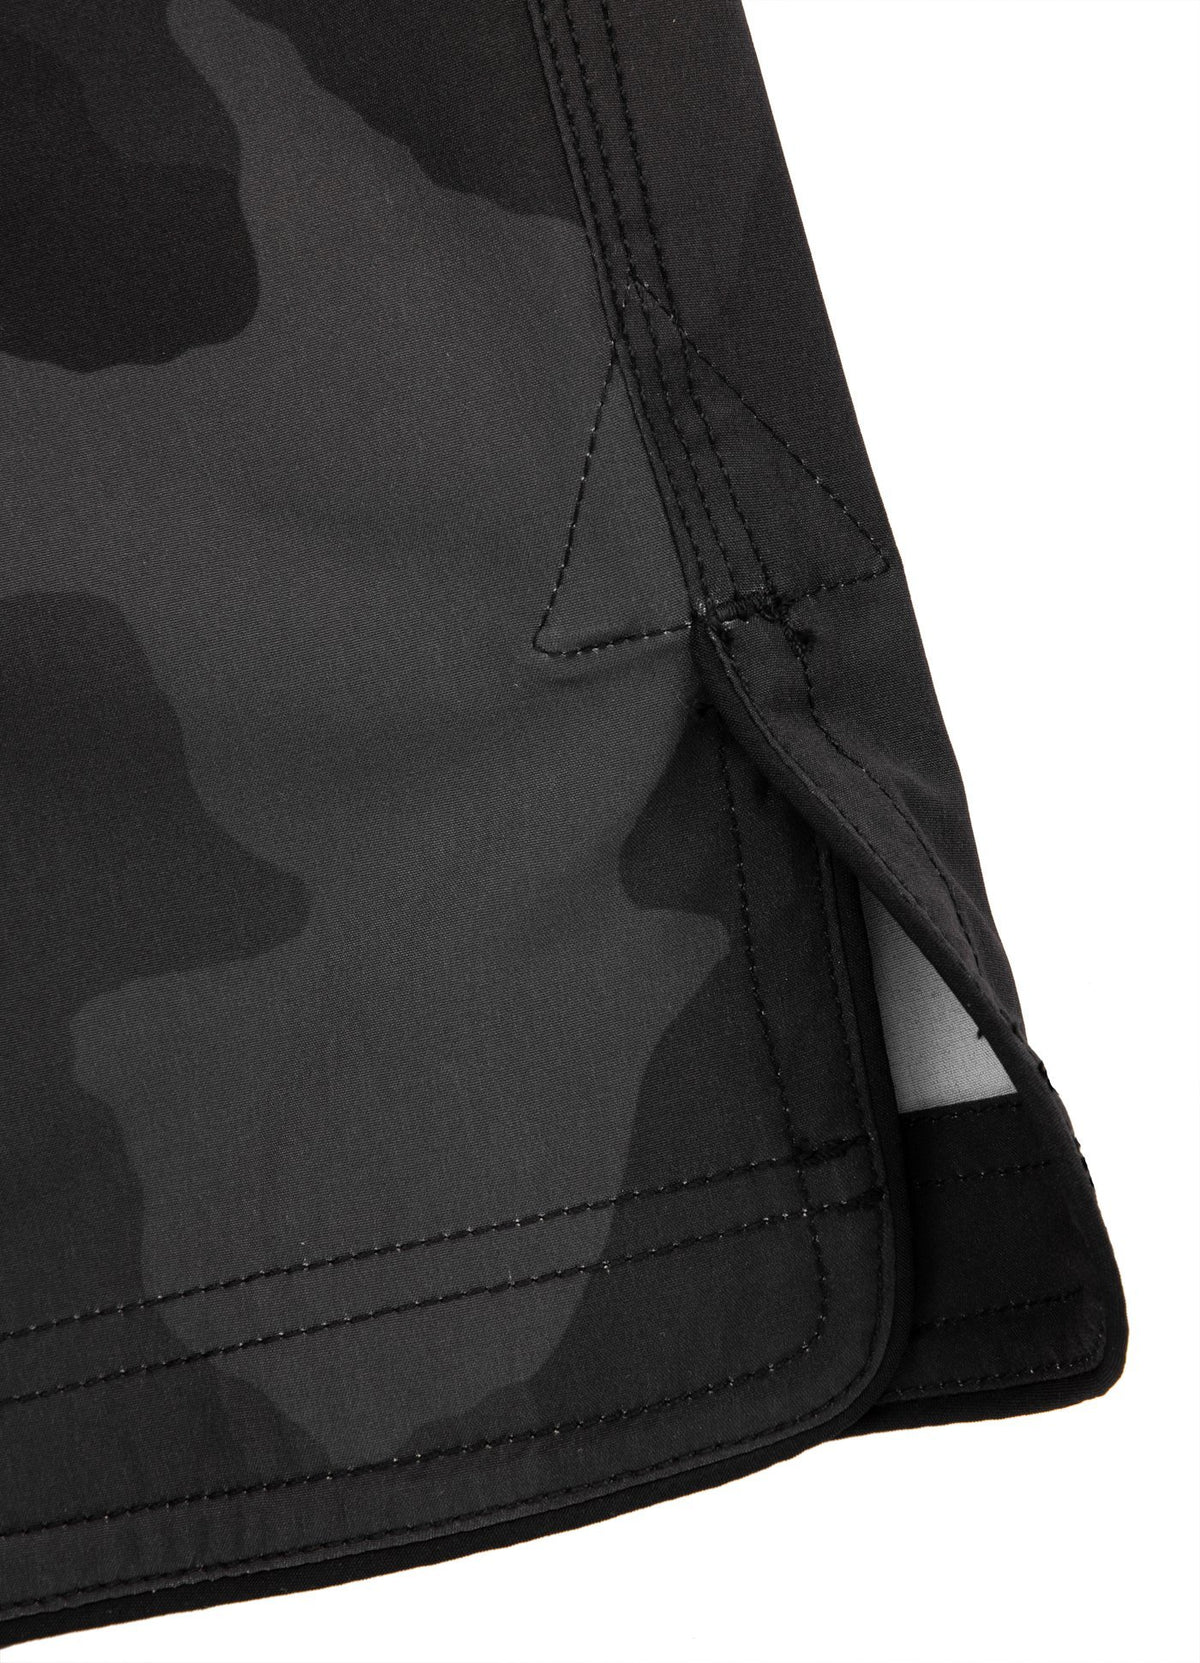 Grappling Shorts PERFORMANCE 203 All Black Camo - Pitbull West Coast U.S.A.